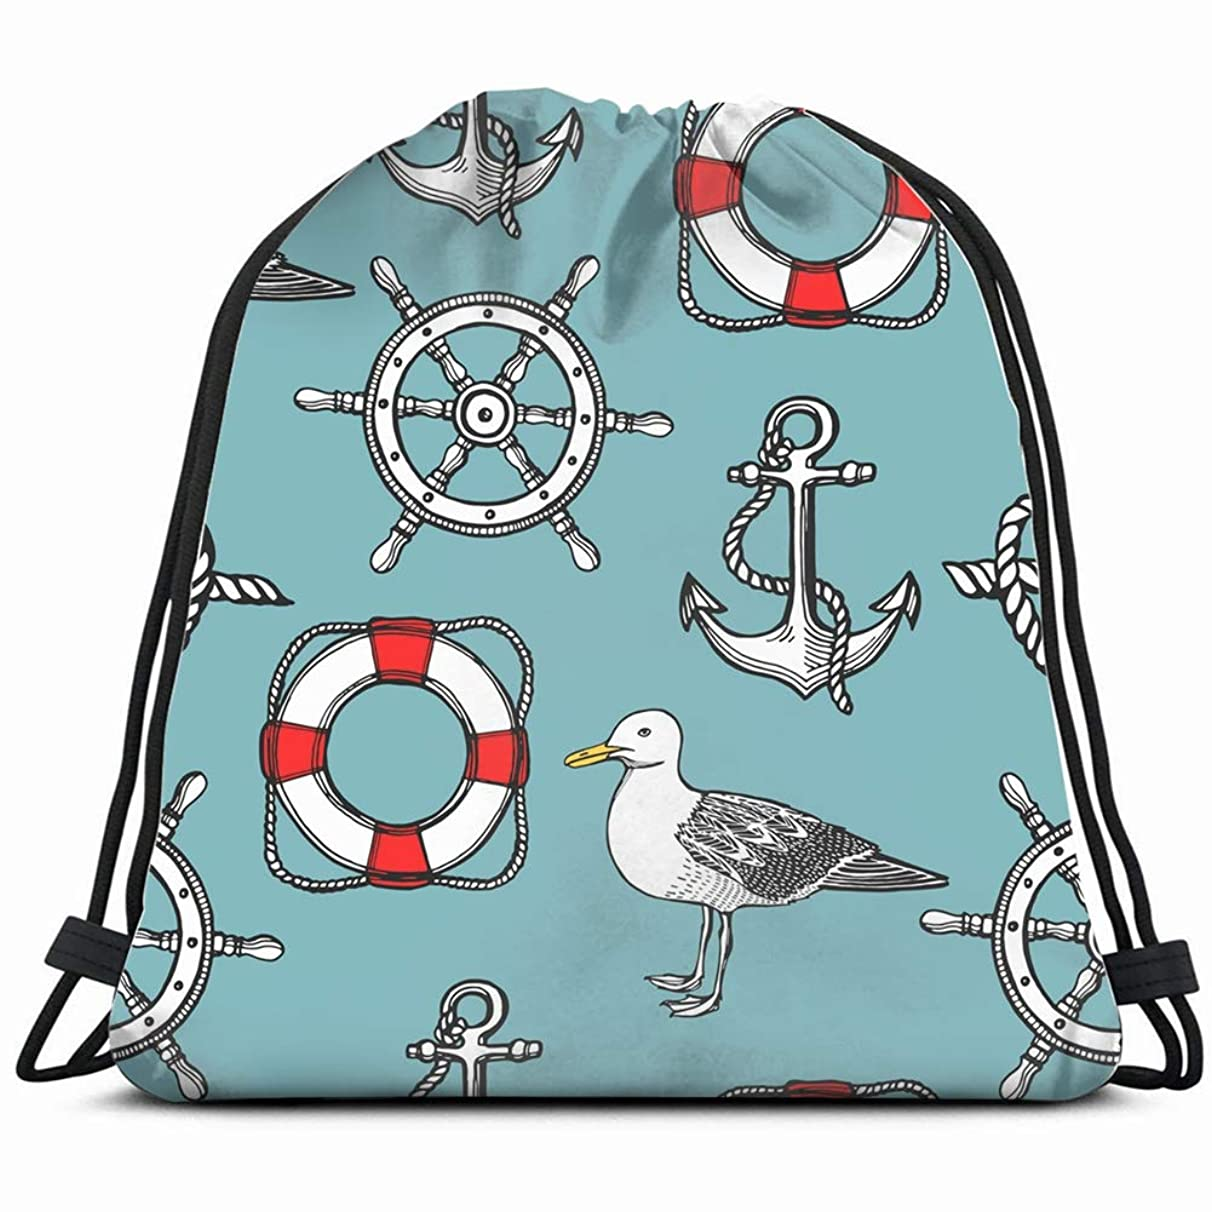 hand drawn vintage nautical seagull Drawstring Backpack Gym Sack Lightweight Bag Water Resistant Gym Backpack for Women&Men for Sports,Travelling,Hiking,Camping,Shopping Yoga